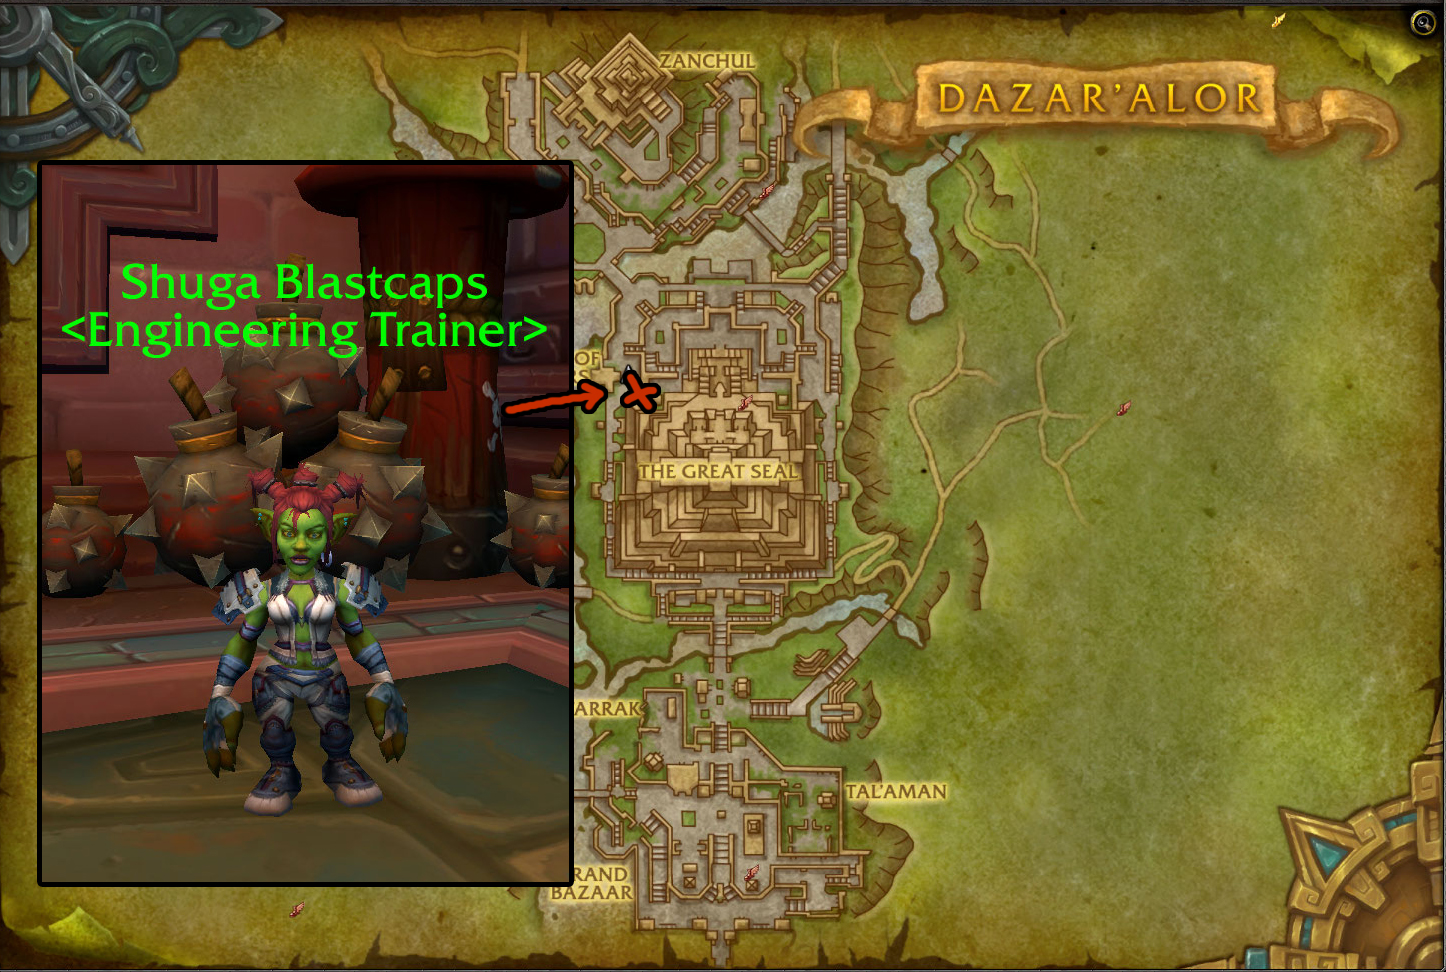 BfA Engineering Leveling Guide 1-175 - WoW Engineering Guide